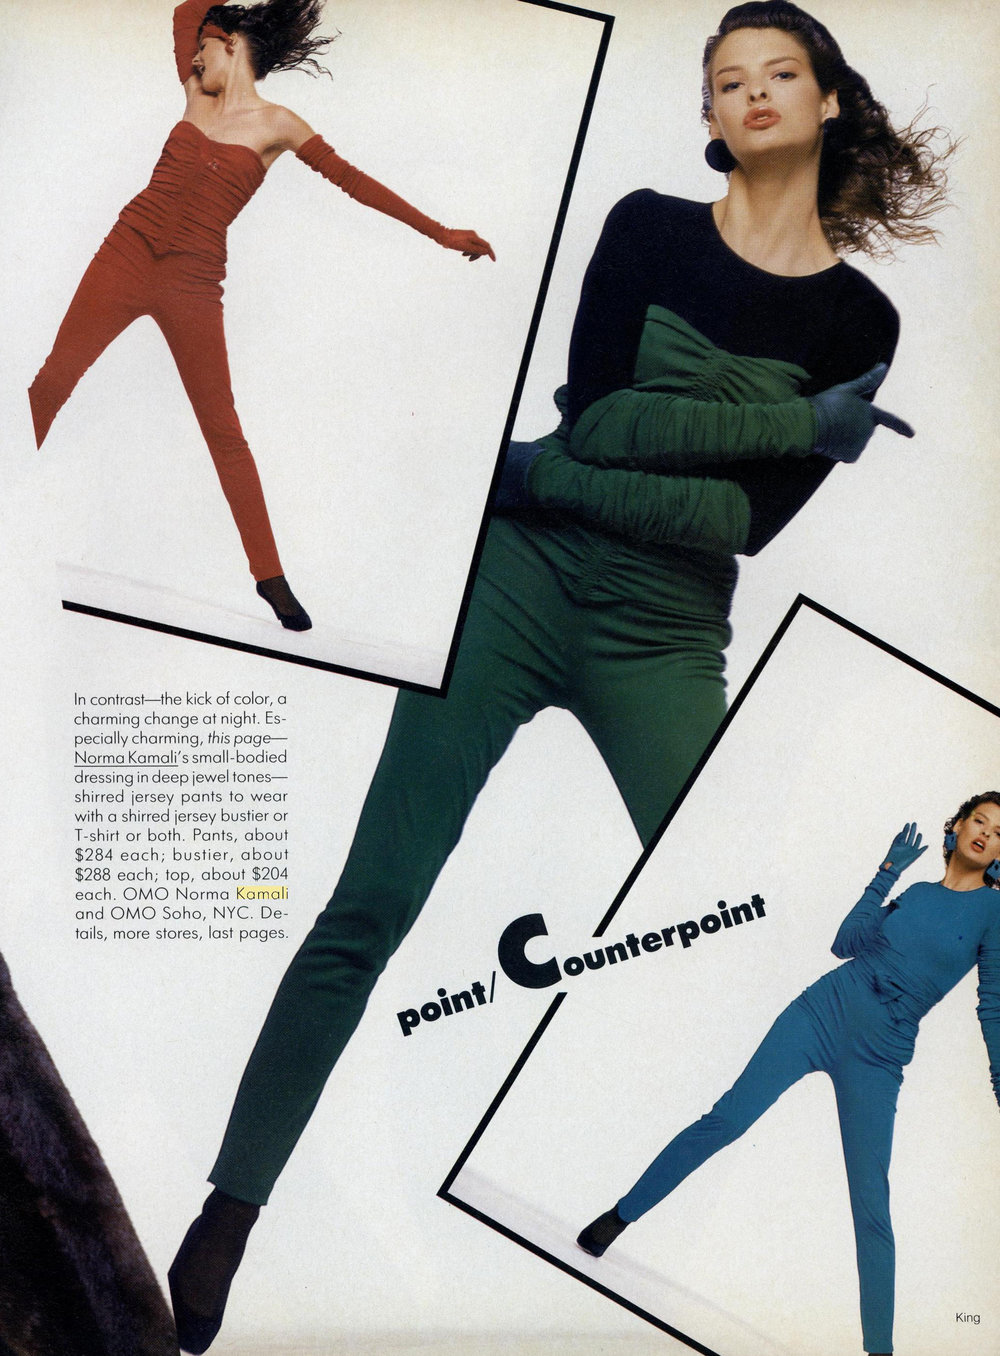 Jewel-tones Kamali tops and tight trousers. Photos by Bill King for Vogue, September 1987.